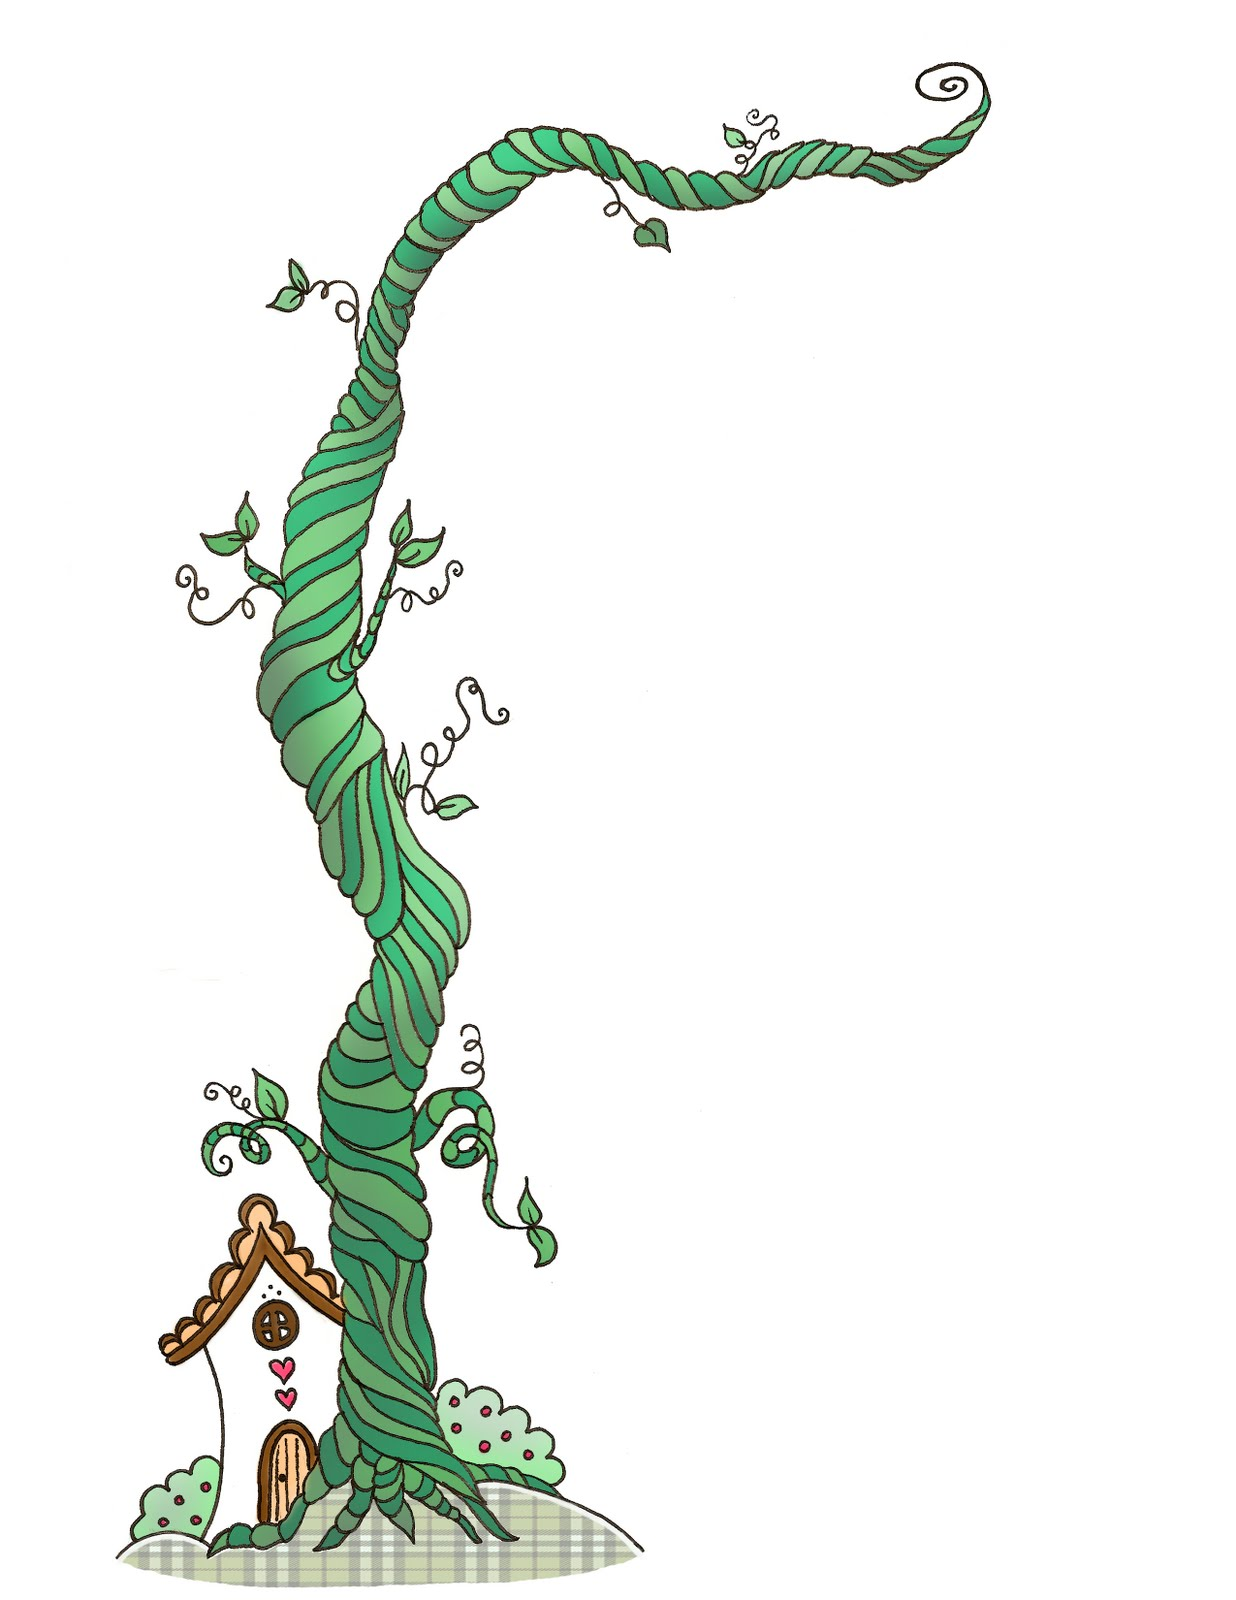 Jack From Jack And The Beanstalk Clipart Best